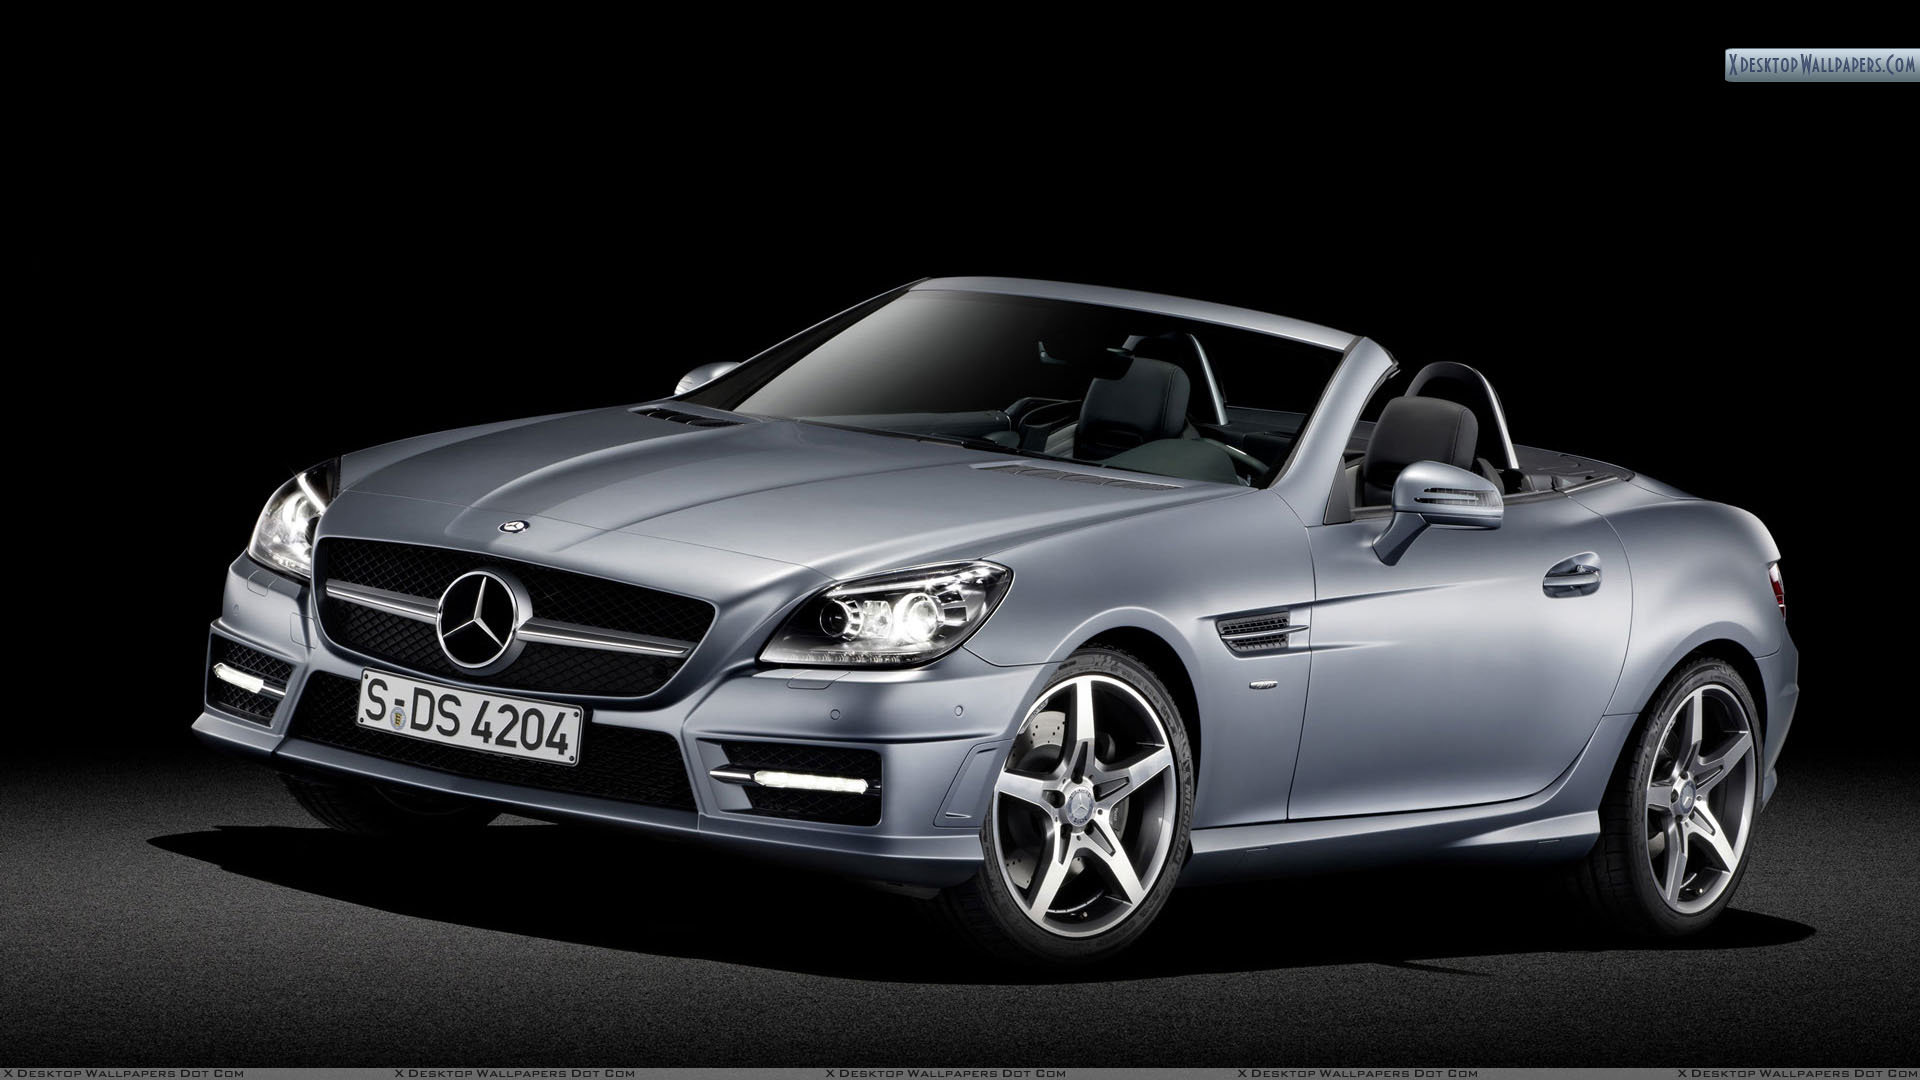 Front side view of silver mercedes benz slk 350 wallpaper for Mercedes benz silver